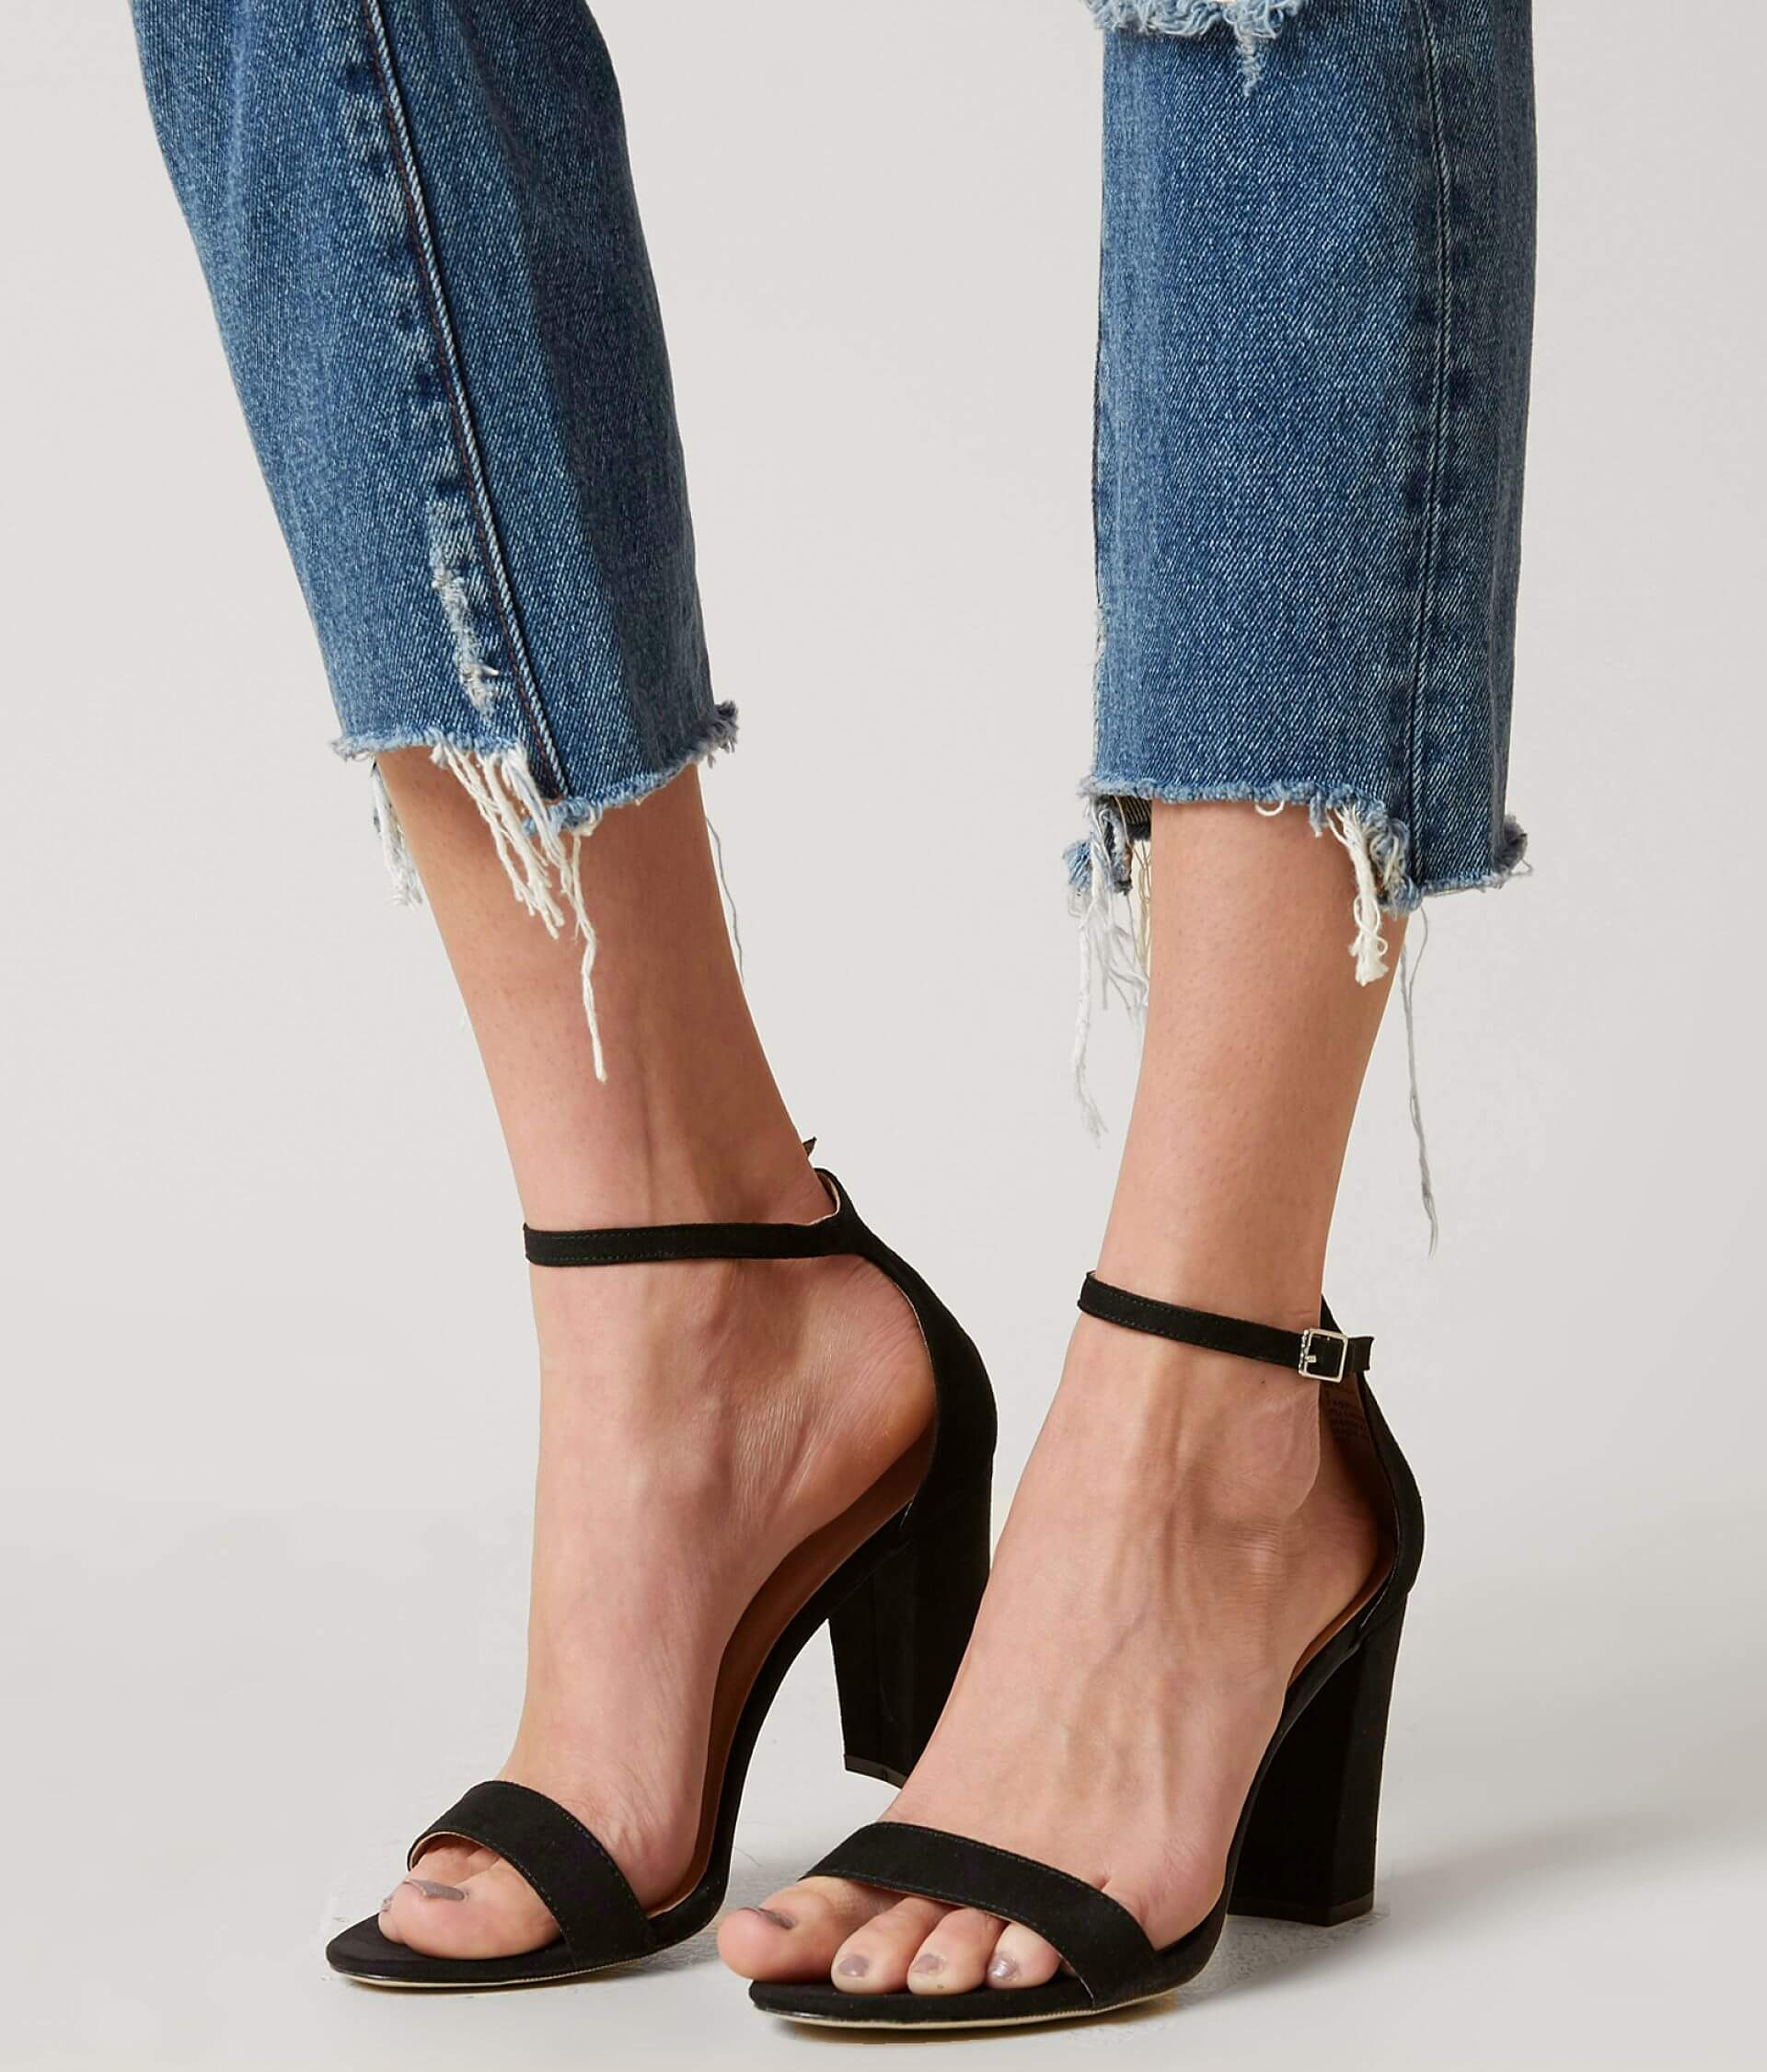 98acfb33693 Madden Girl Beella Heeled Sandal - Women s Shoes in Black Micro